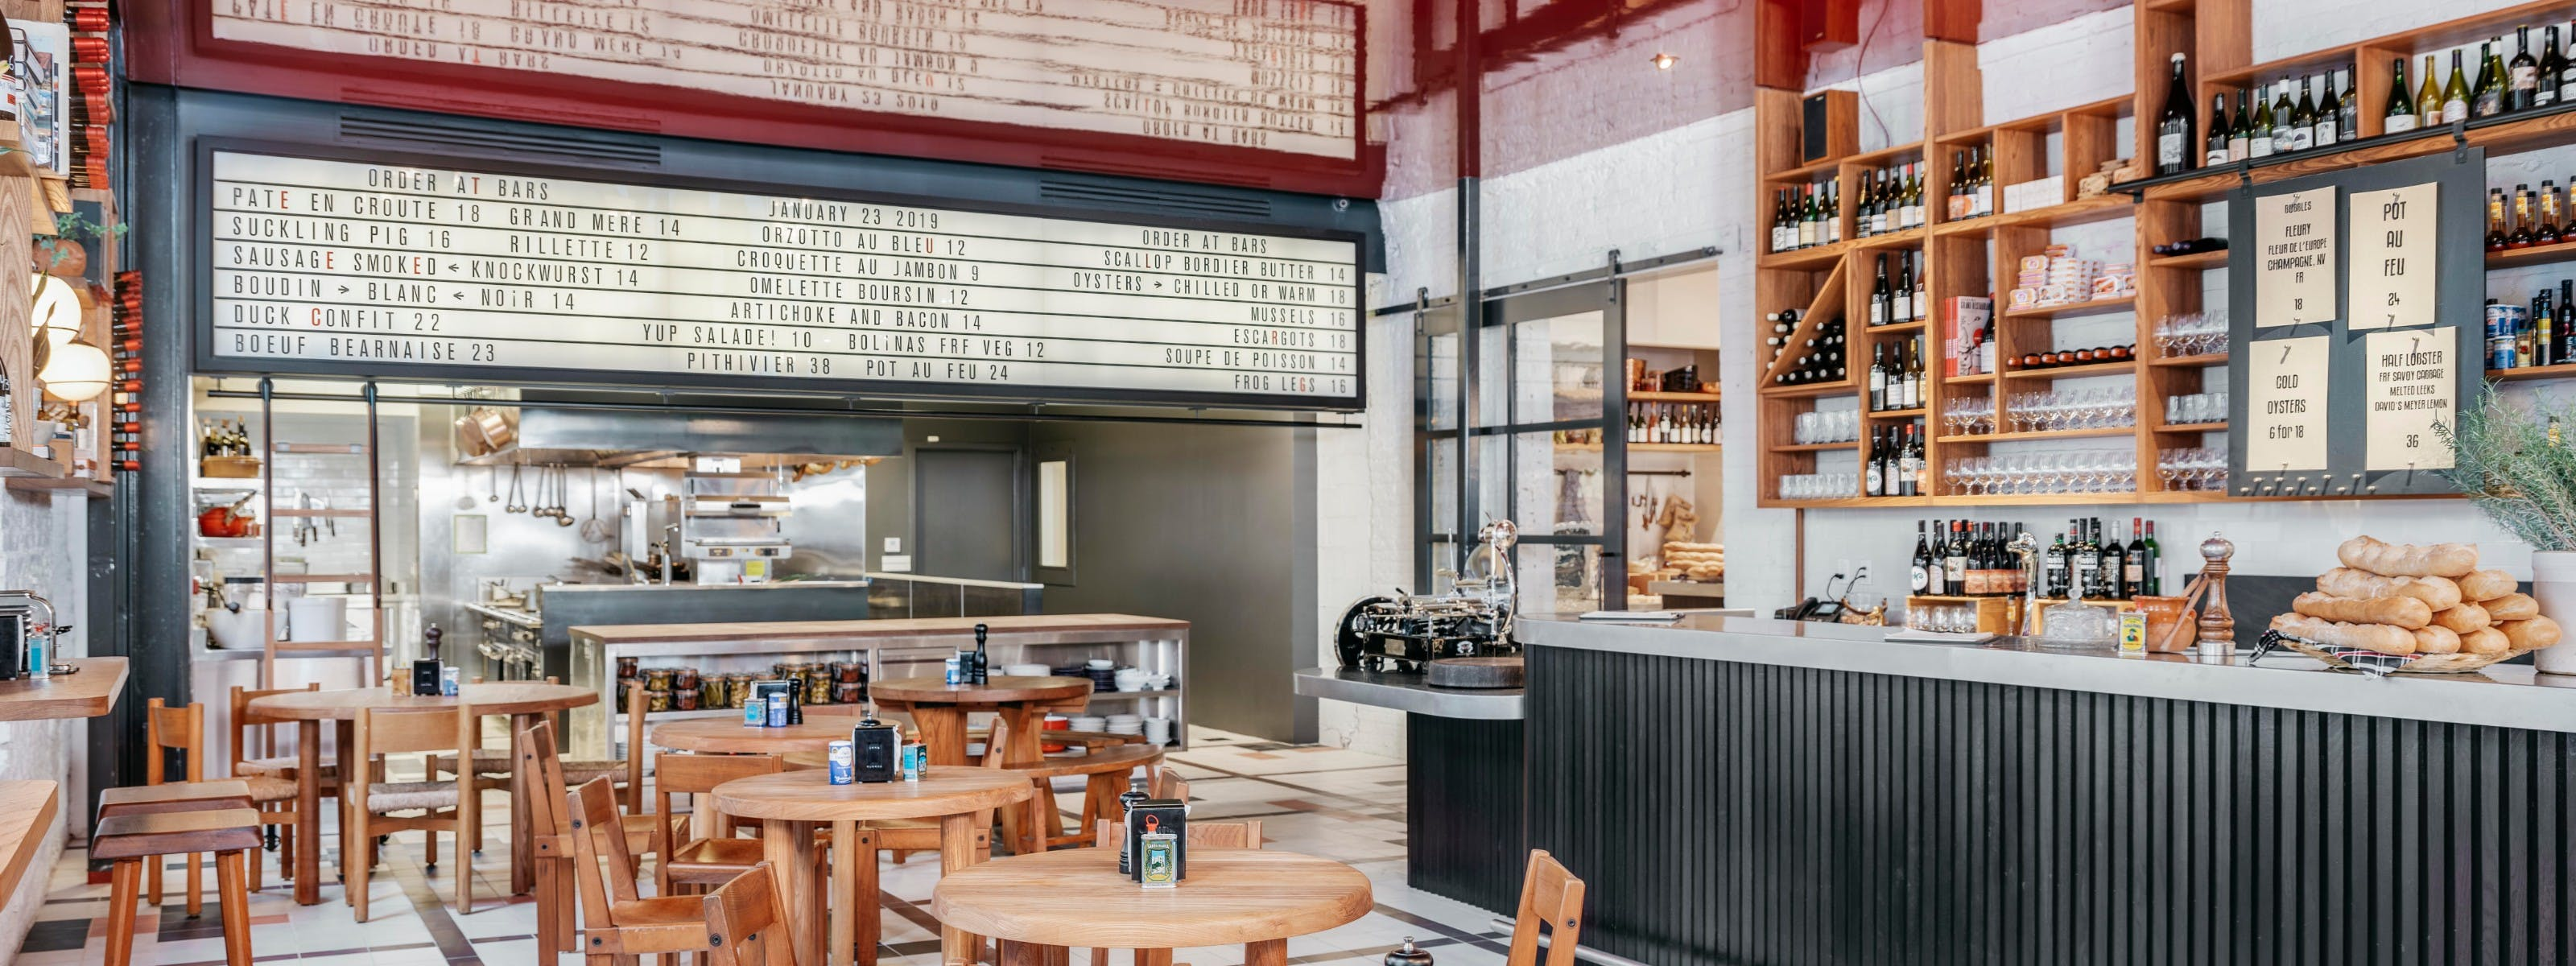 The Best Places To Eat In The Financial District - Financial District - San Francisco - The Infatuation